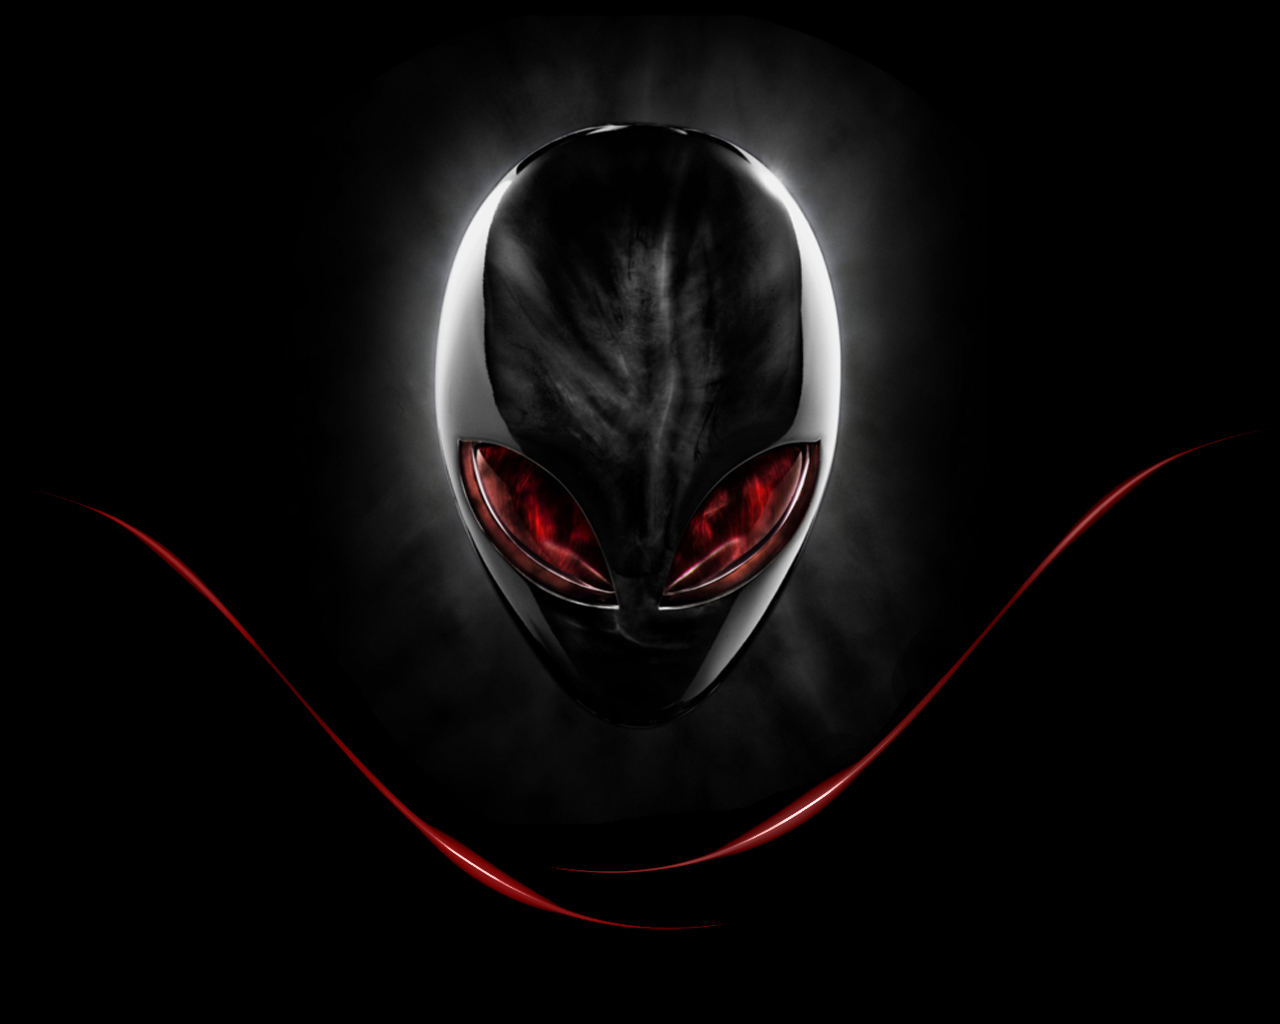 Red Alienware Wallpapers Wallpaper Hd Background Desktop 1280x1024